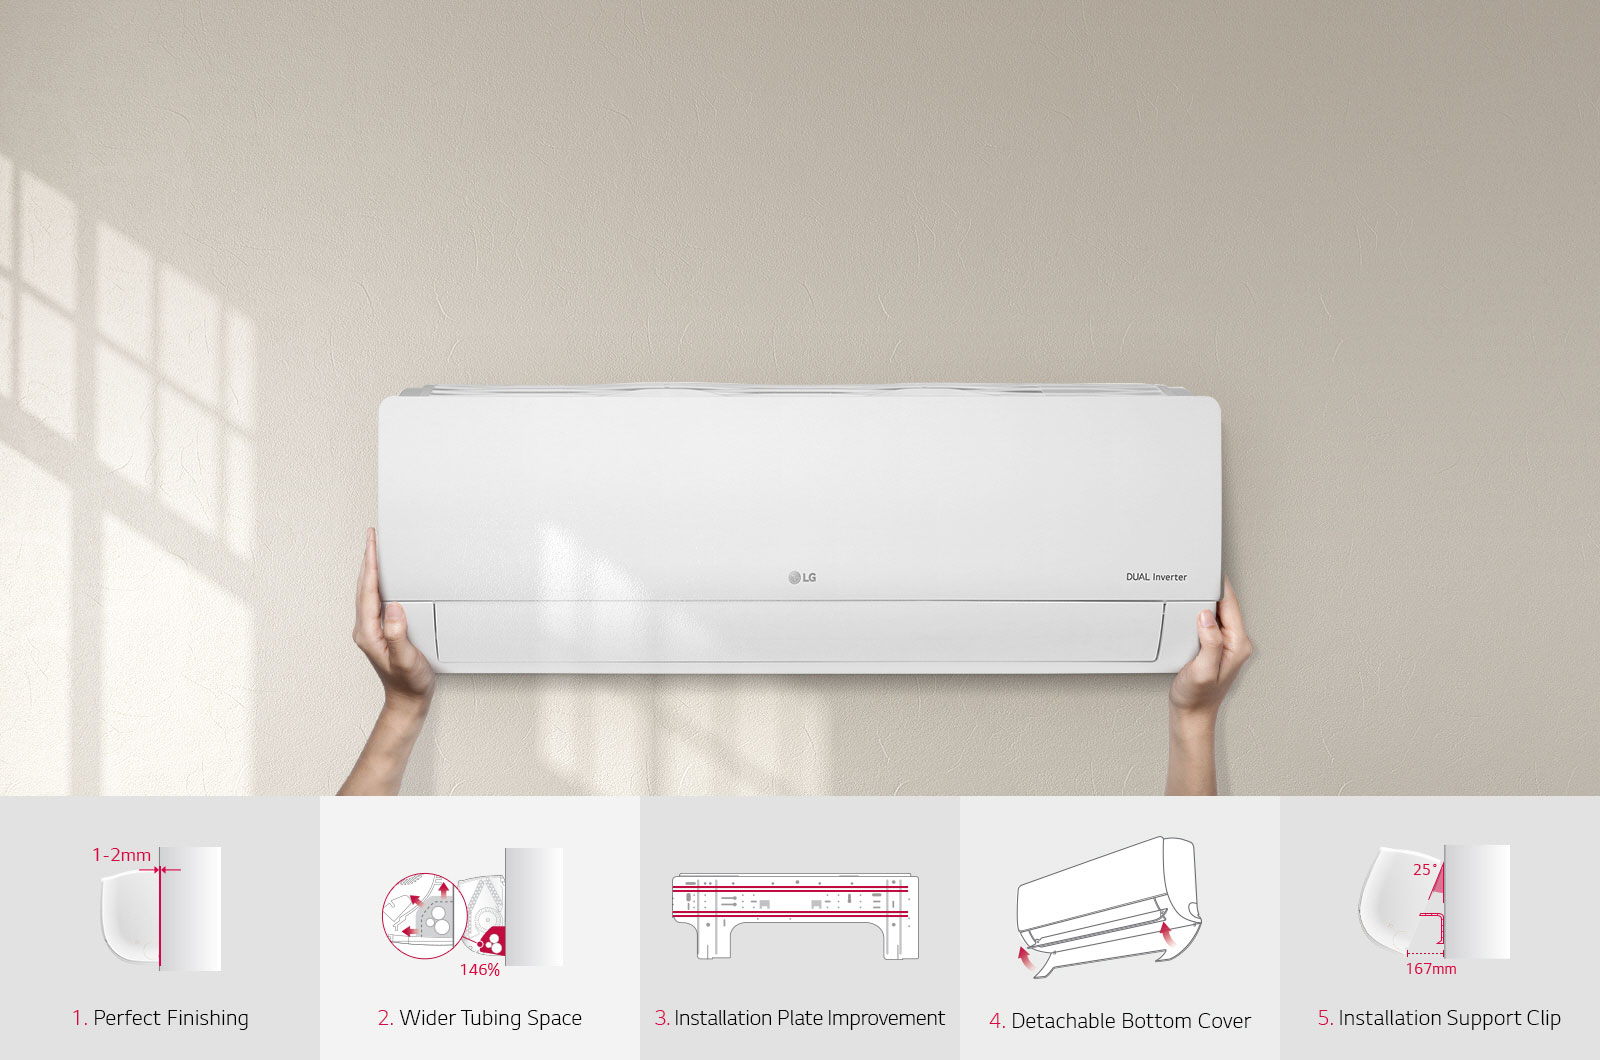 Lg Bsa18beyd Dual Inverter 15tr Split Ac India Air Conditioning Circuit Board Cost Conditioner Quick And Easy Installation Conditioners